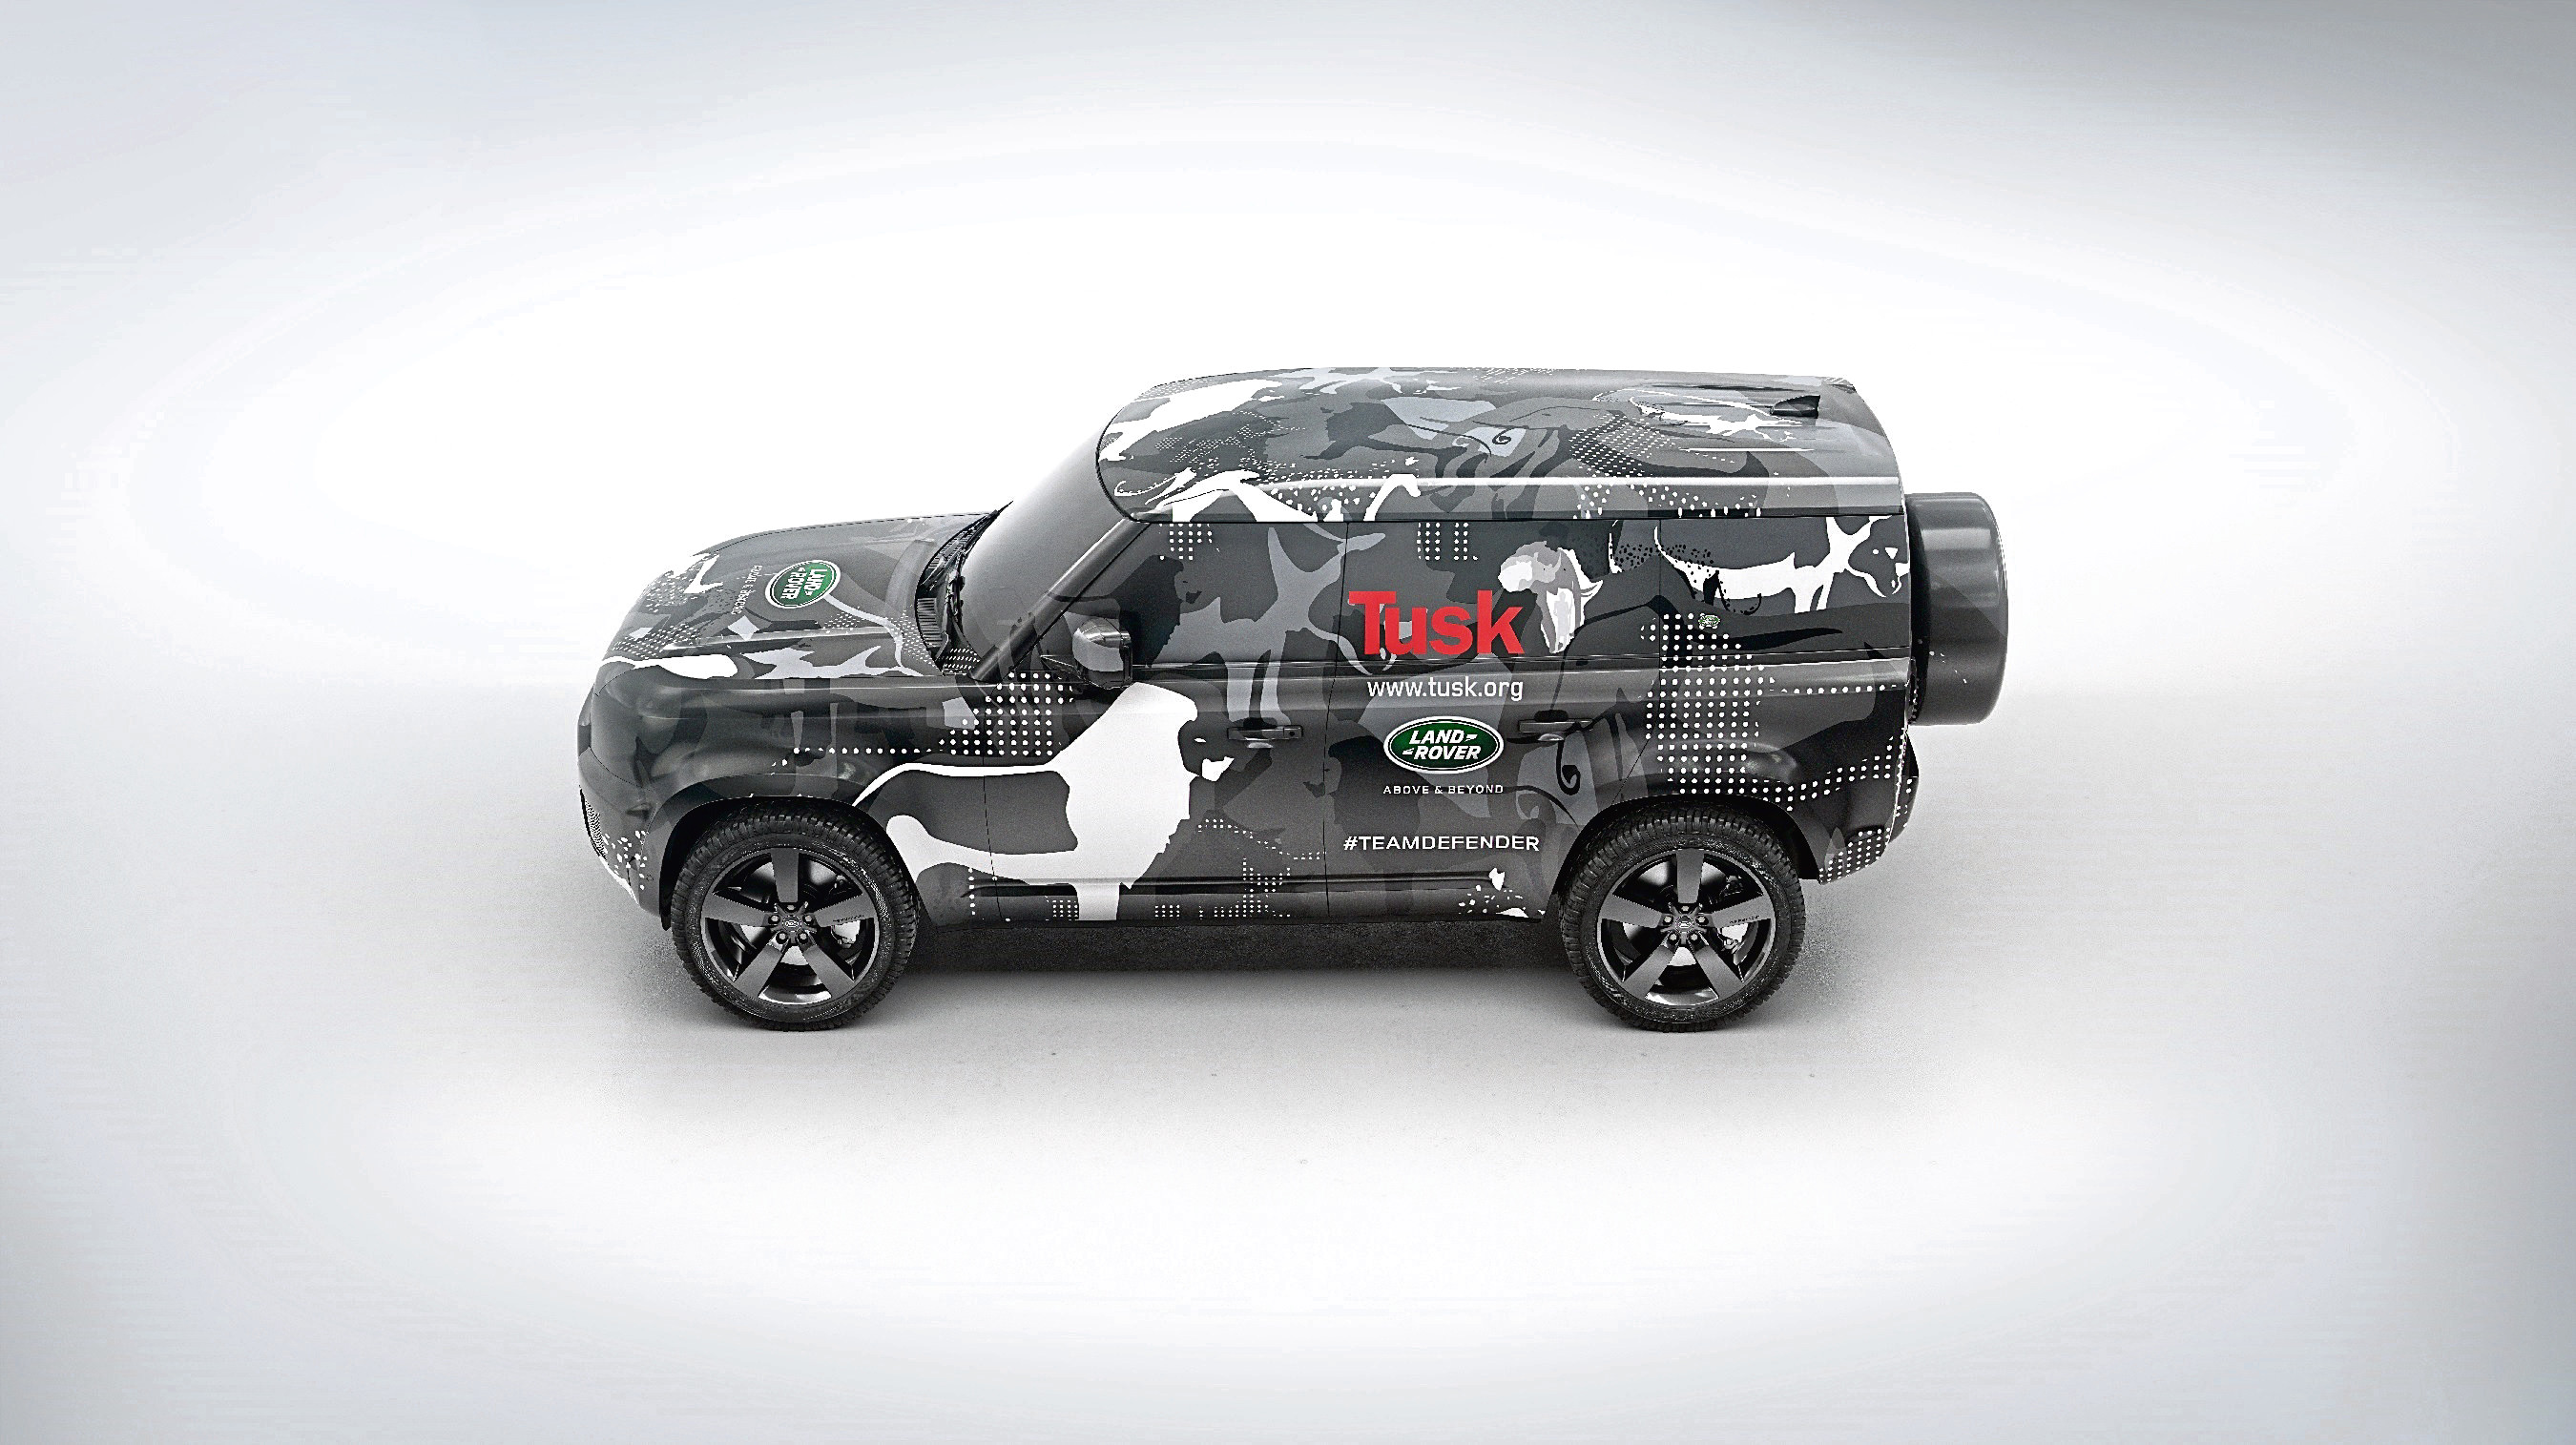 New Land Rover Defender showcased in lighter camouflage